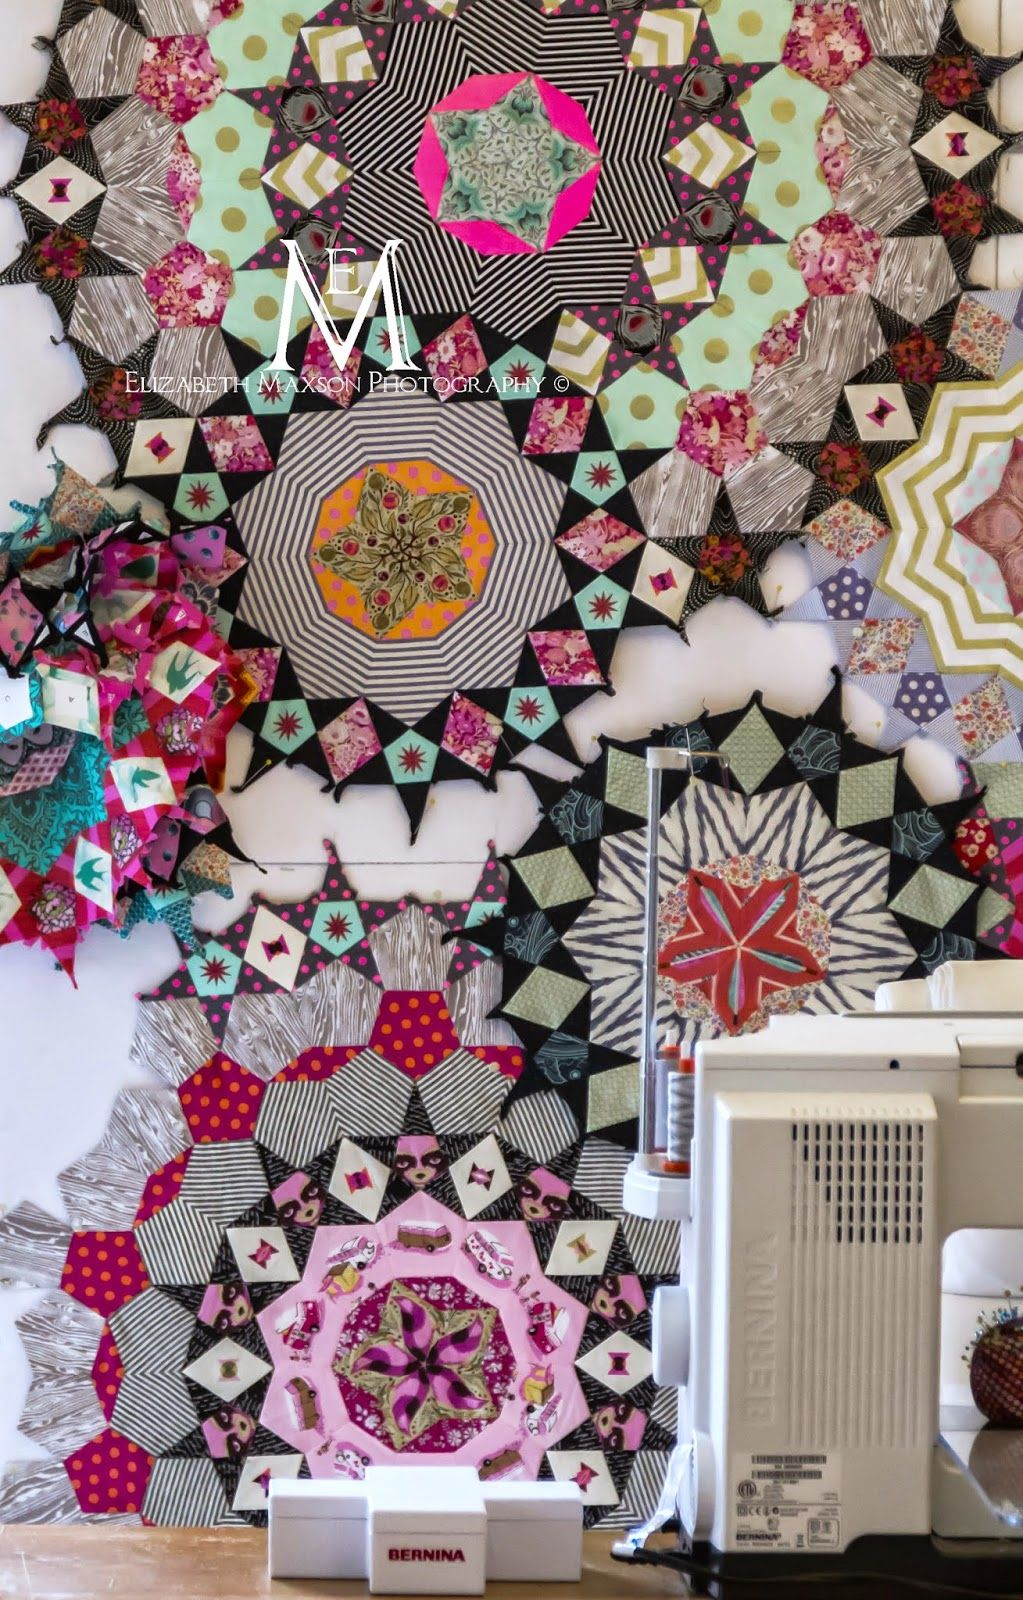 Tickled Pink (With images) English paper piecing quilts